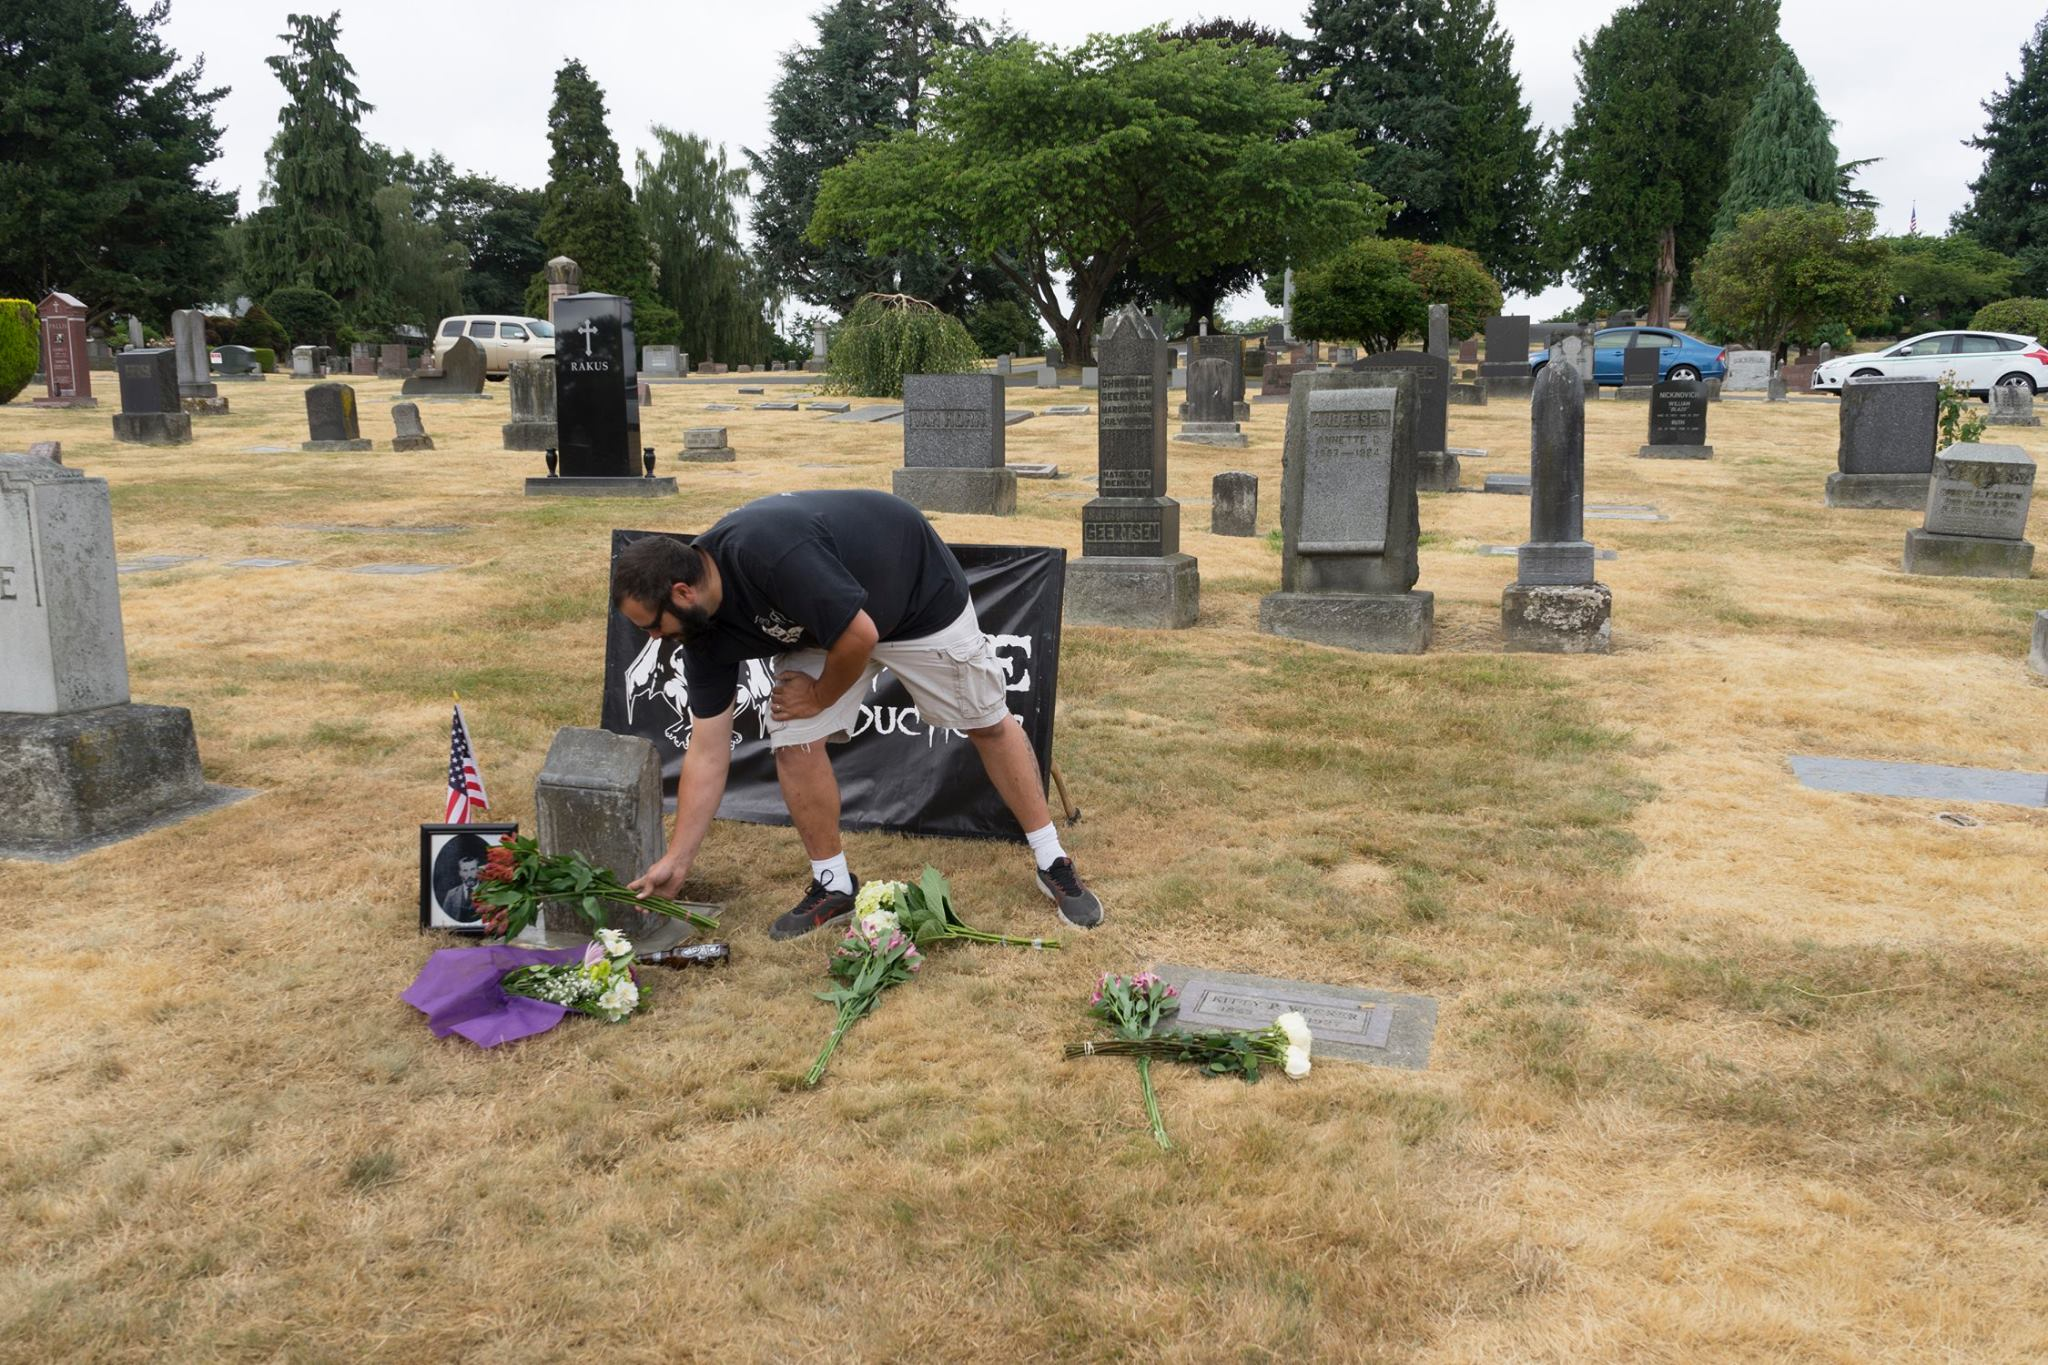 Richard Palmer, a Seattle man who died in 1901, has his tombstone returned and honored at Lake View Cemetery on July 30, 2017 (Photo: Shane Mitchell)